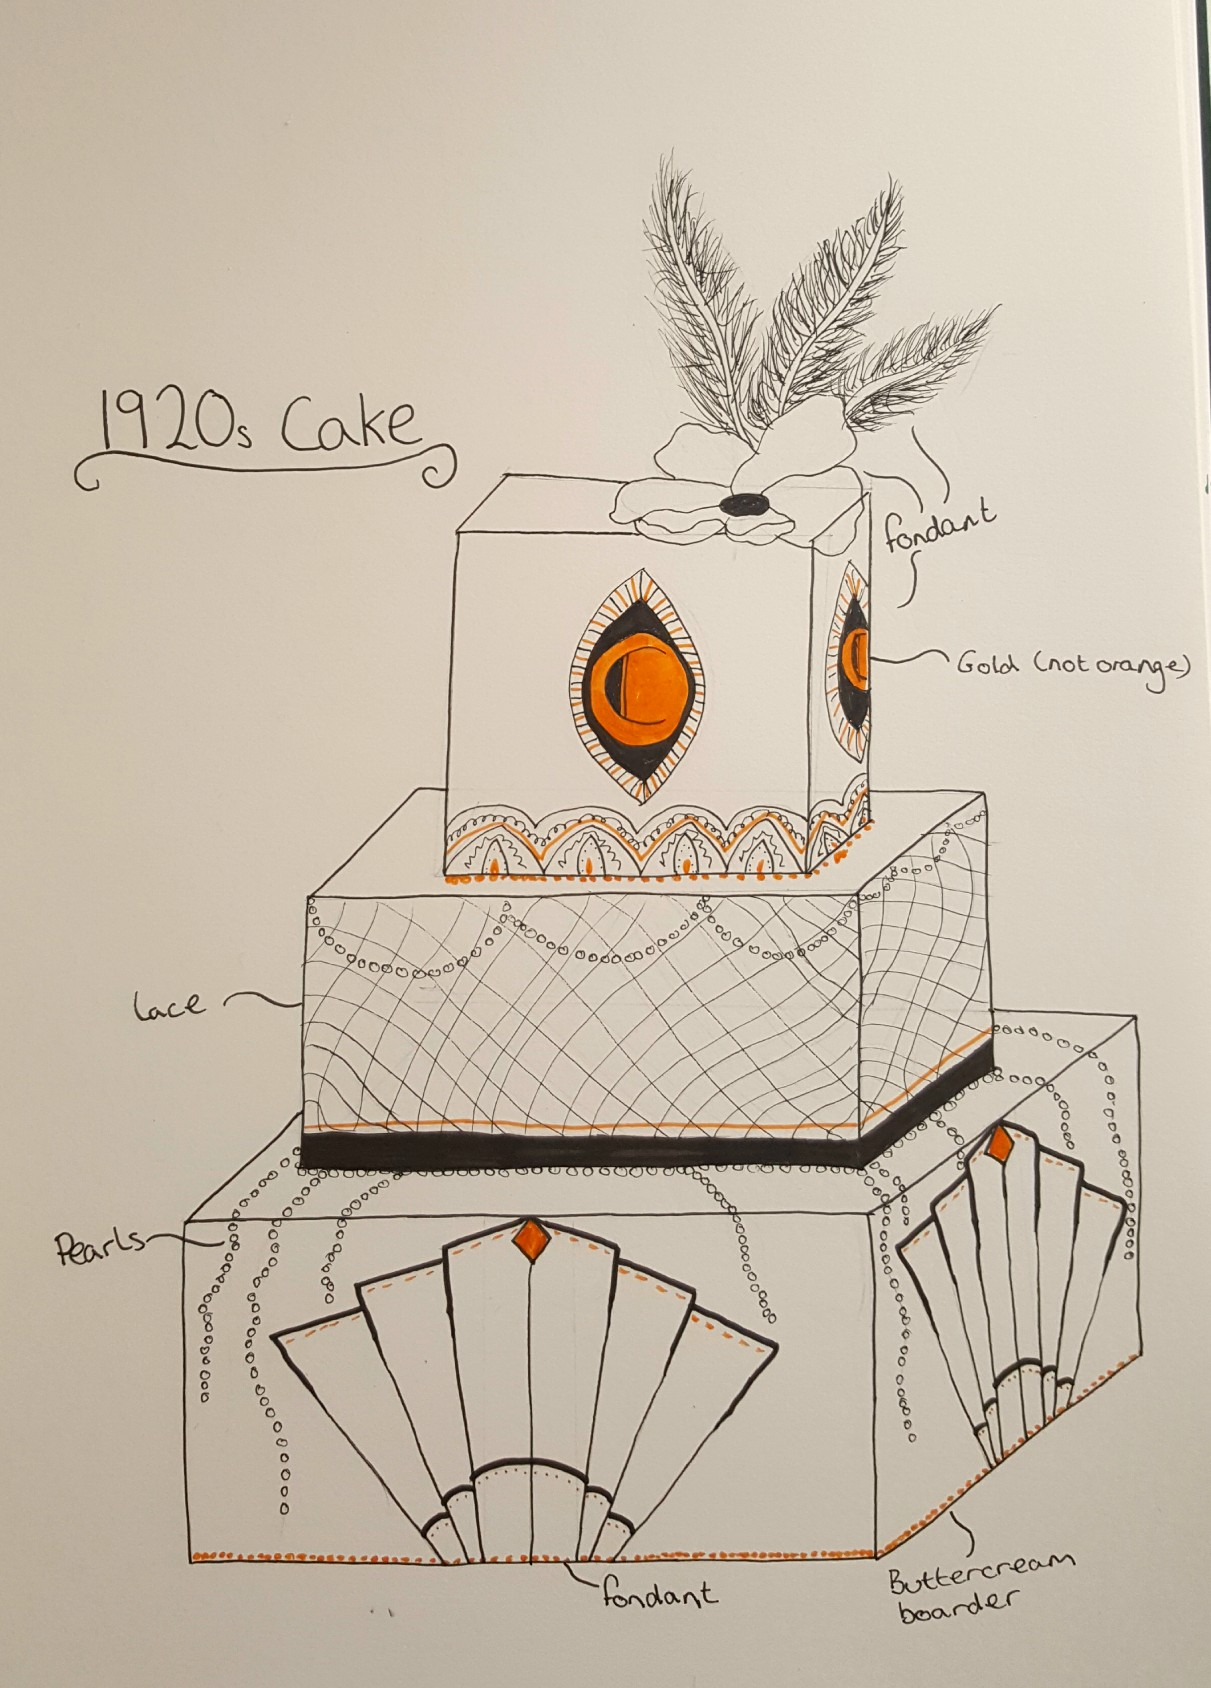 1211x1688 Cake design completed 020817 My drawingsart Pinterest